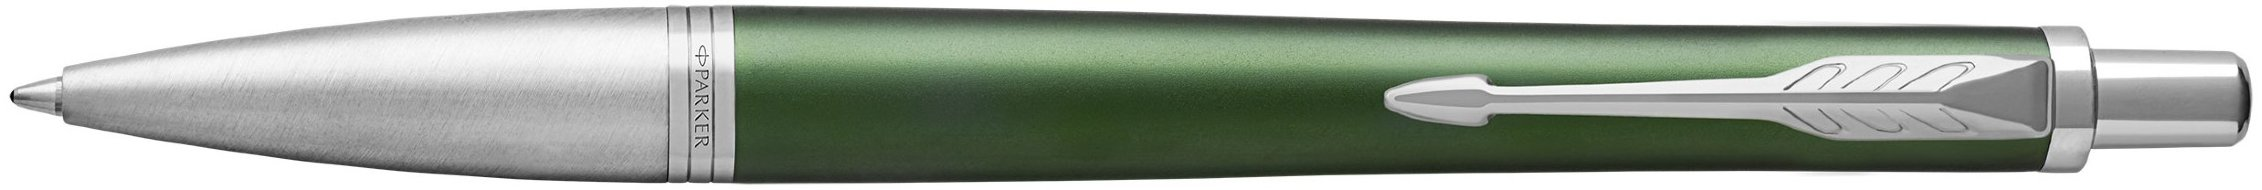 Шариковая ручка Parker Urban Premium K311 Green CT